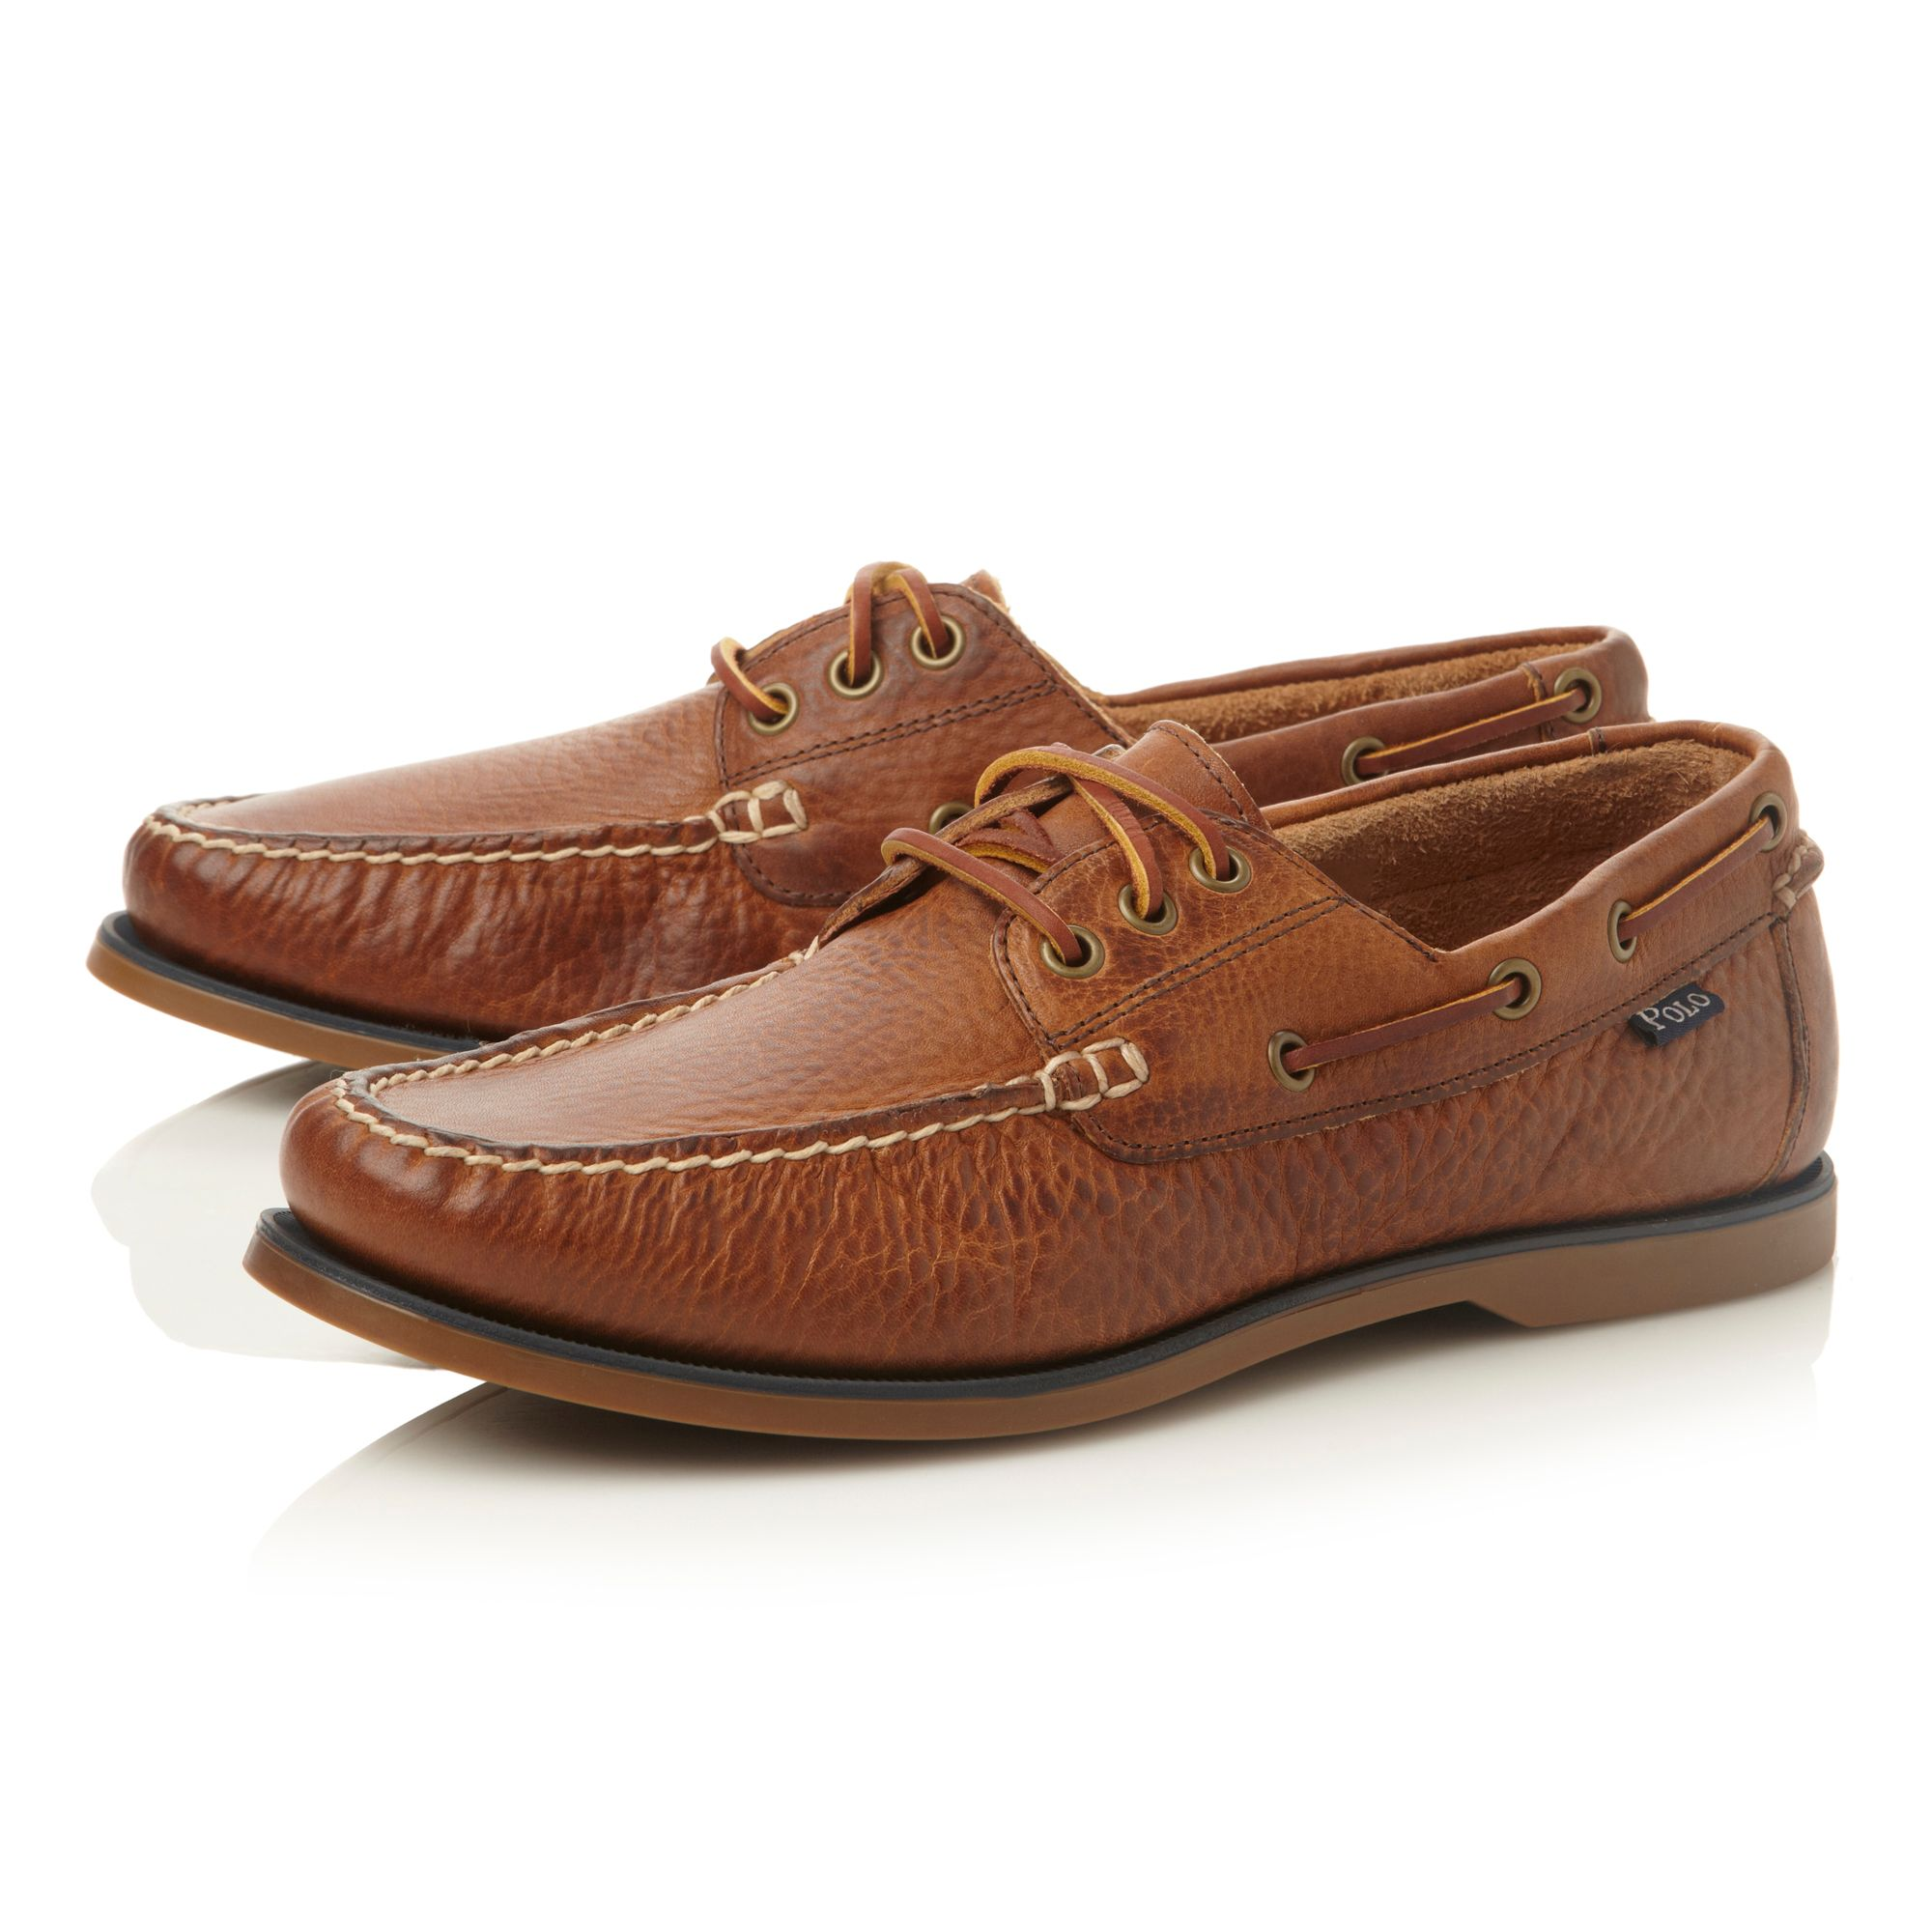 Bienne lace up tumbled leather boat shoes